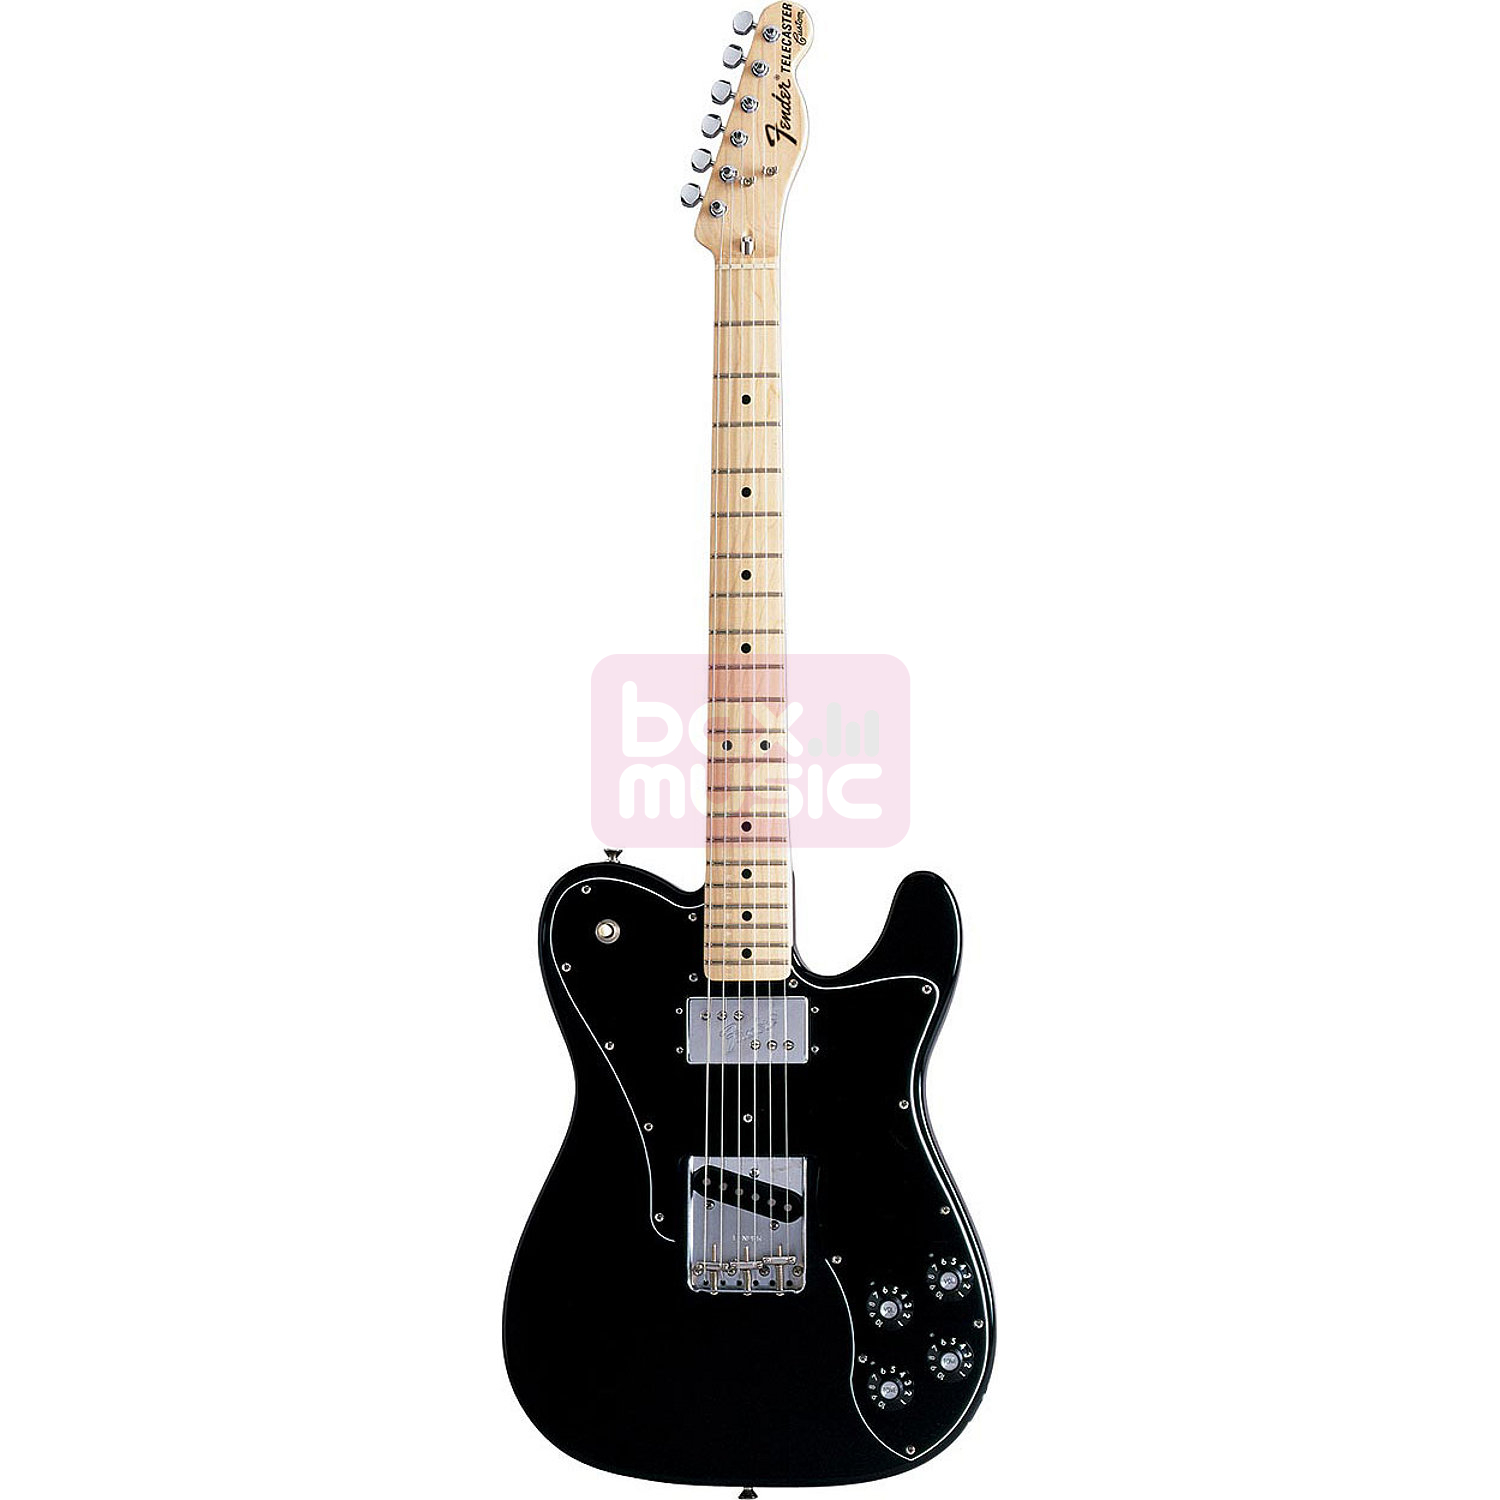 Fender Classic Series 72 Telecaster Custom Black MN